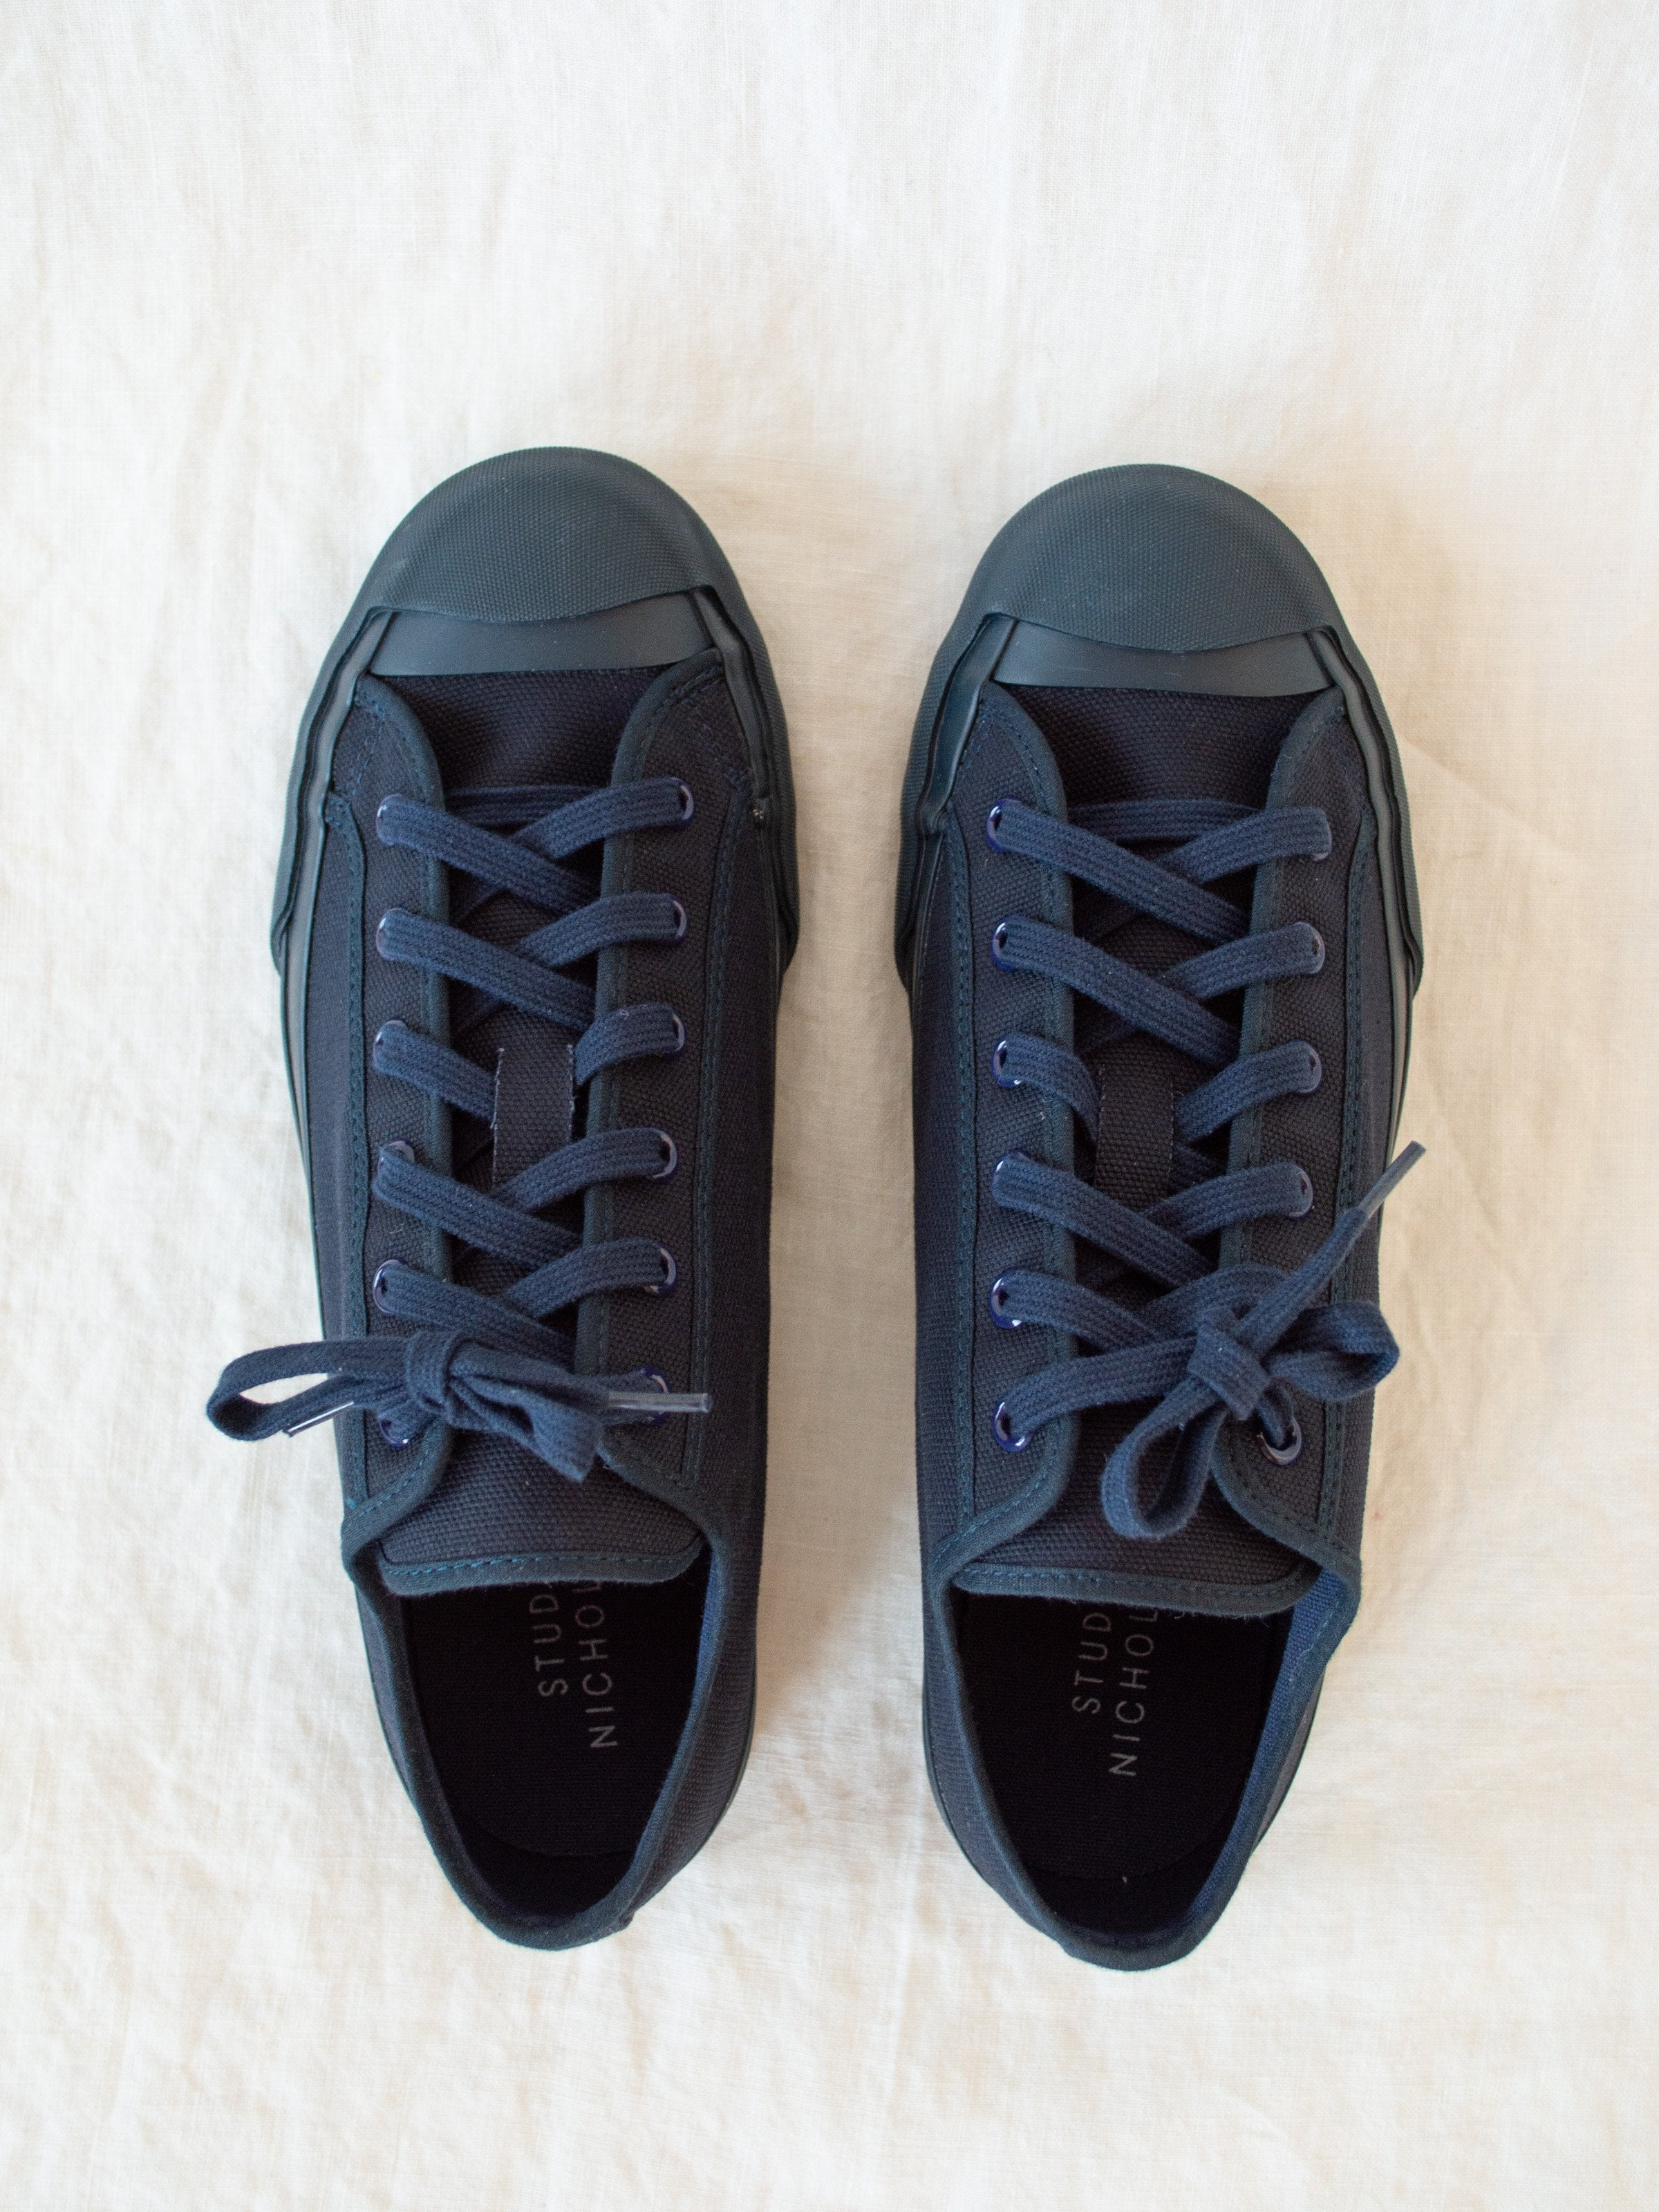 Namu Shop - Studio Nicholson Moonstar x Studio Nicholson - Dark Navy (Women's)